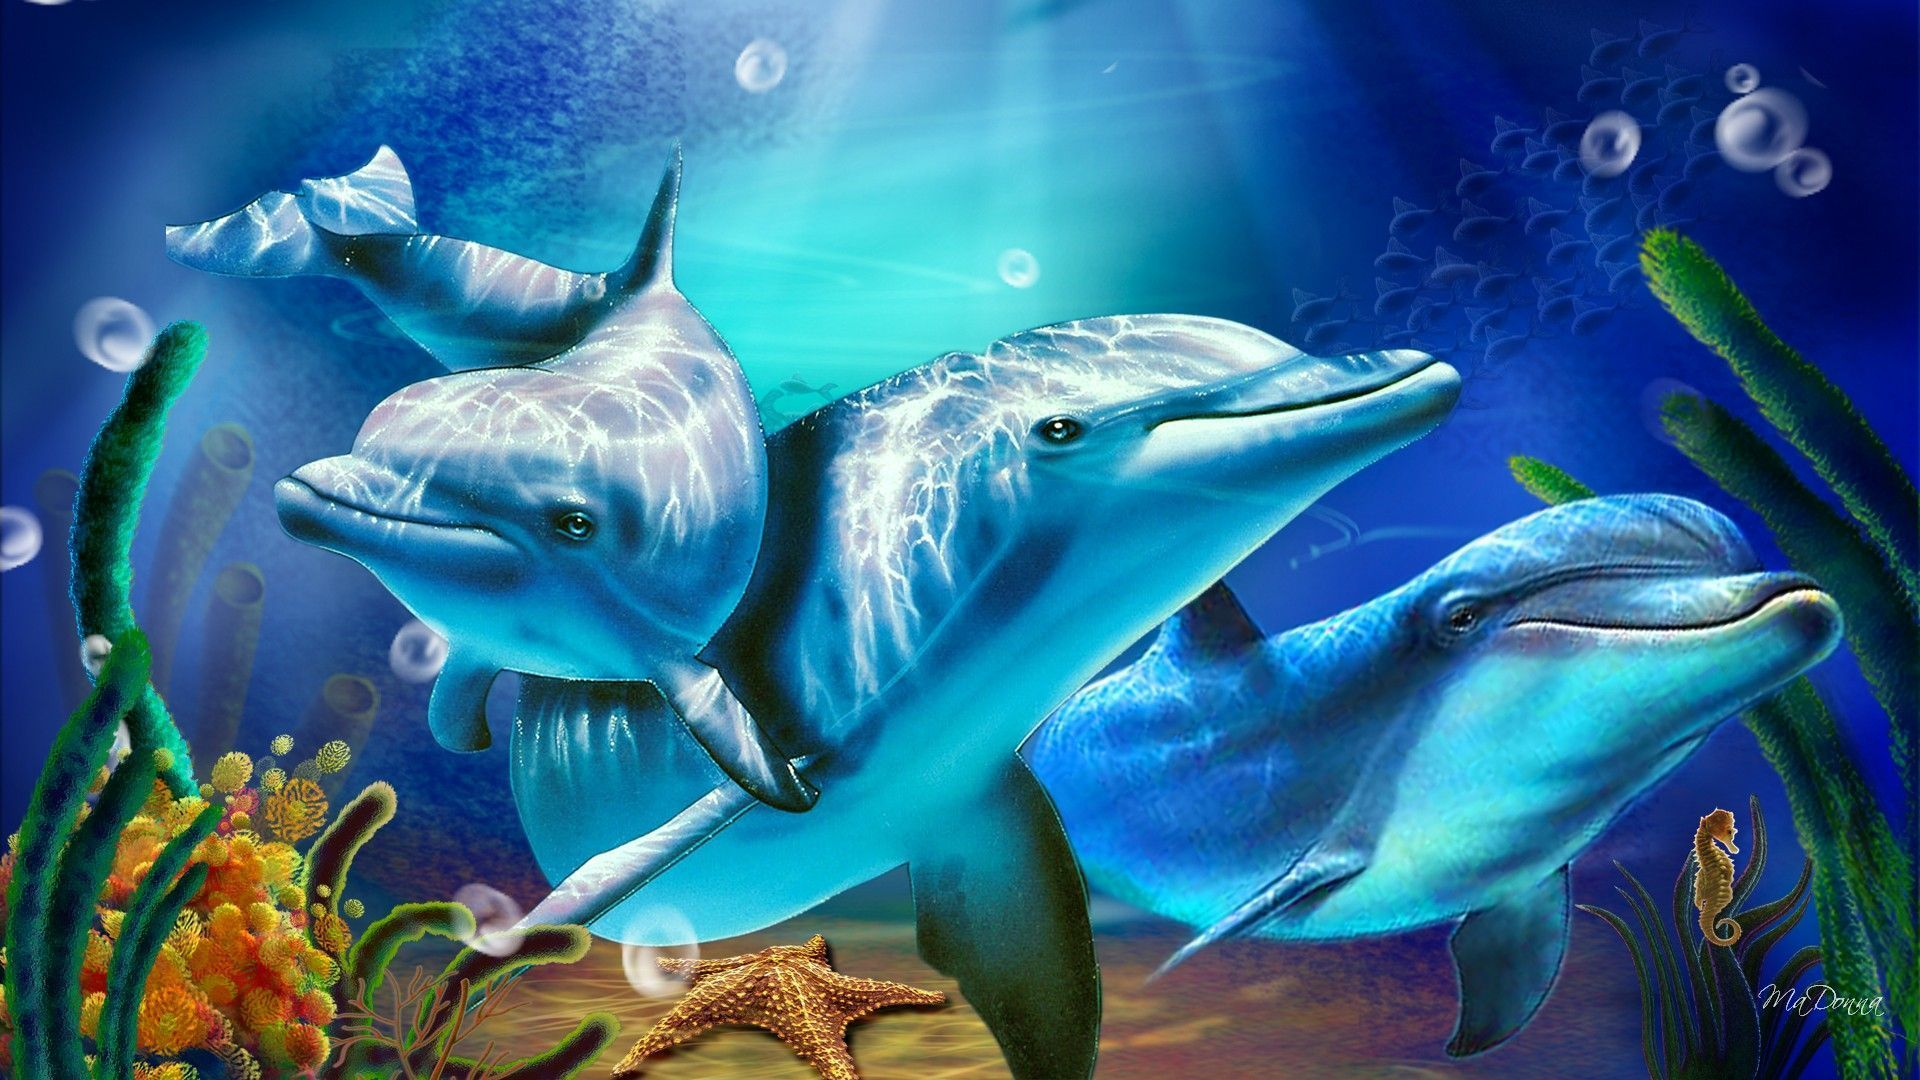 Dolphin Wallpaper 1080p Praju In 2019 Dolphins Animal Dolphin